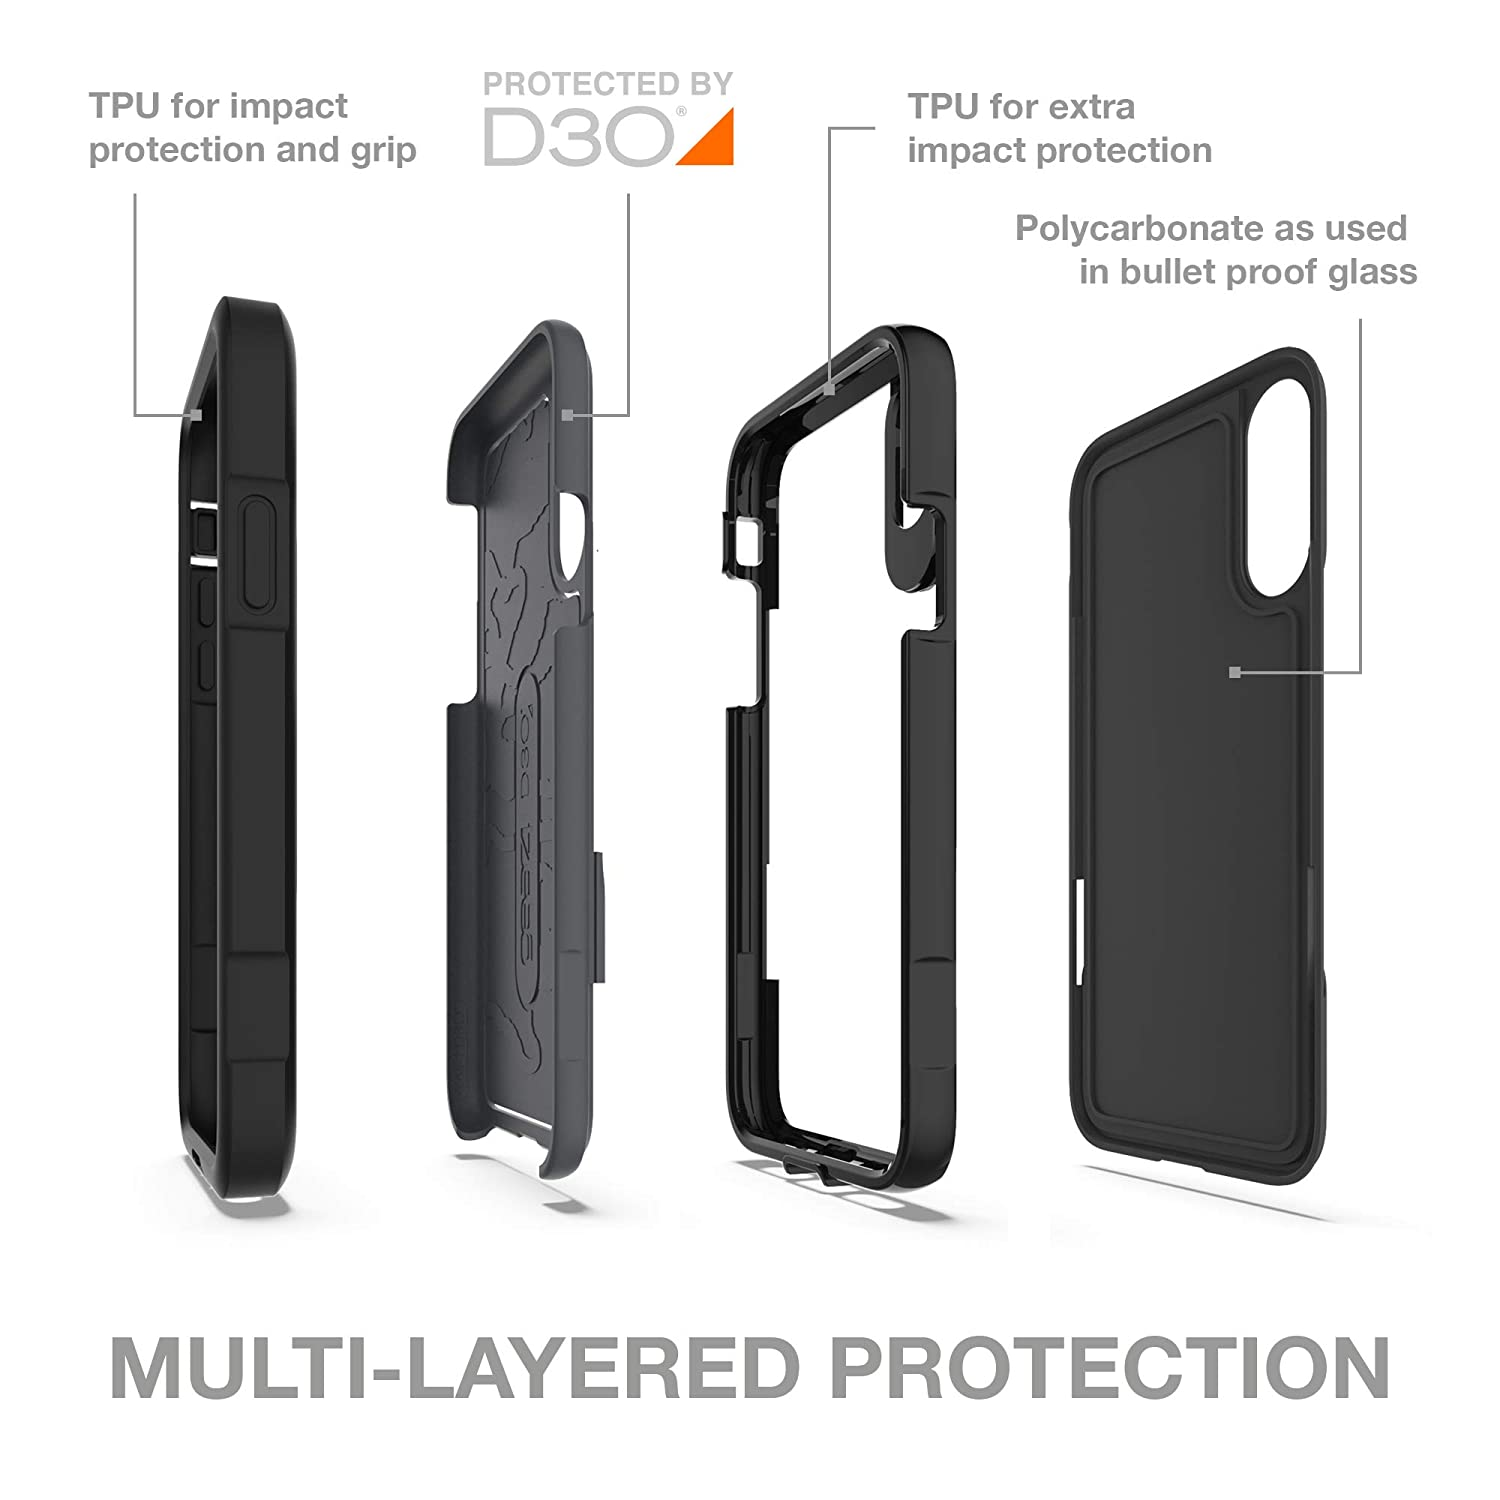 premium selection 362cc d2d8e Gear4 Platoon Case with Advanced Impact Protection [ Protected by D3O ],  Tough, Ultra-Durable Design for iPhone Xs Max - Black